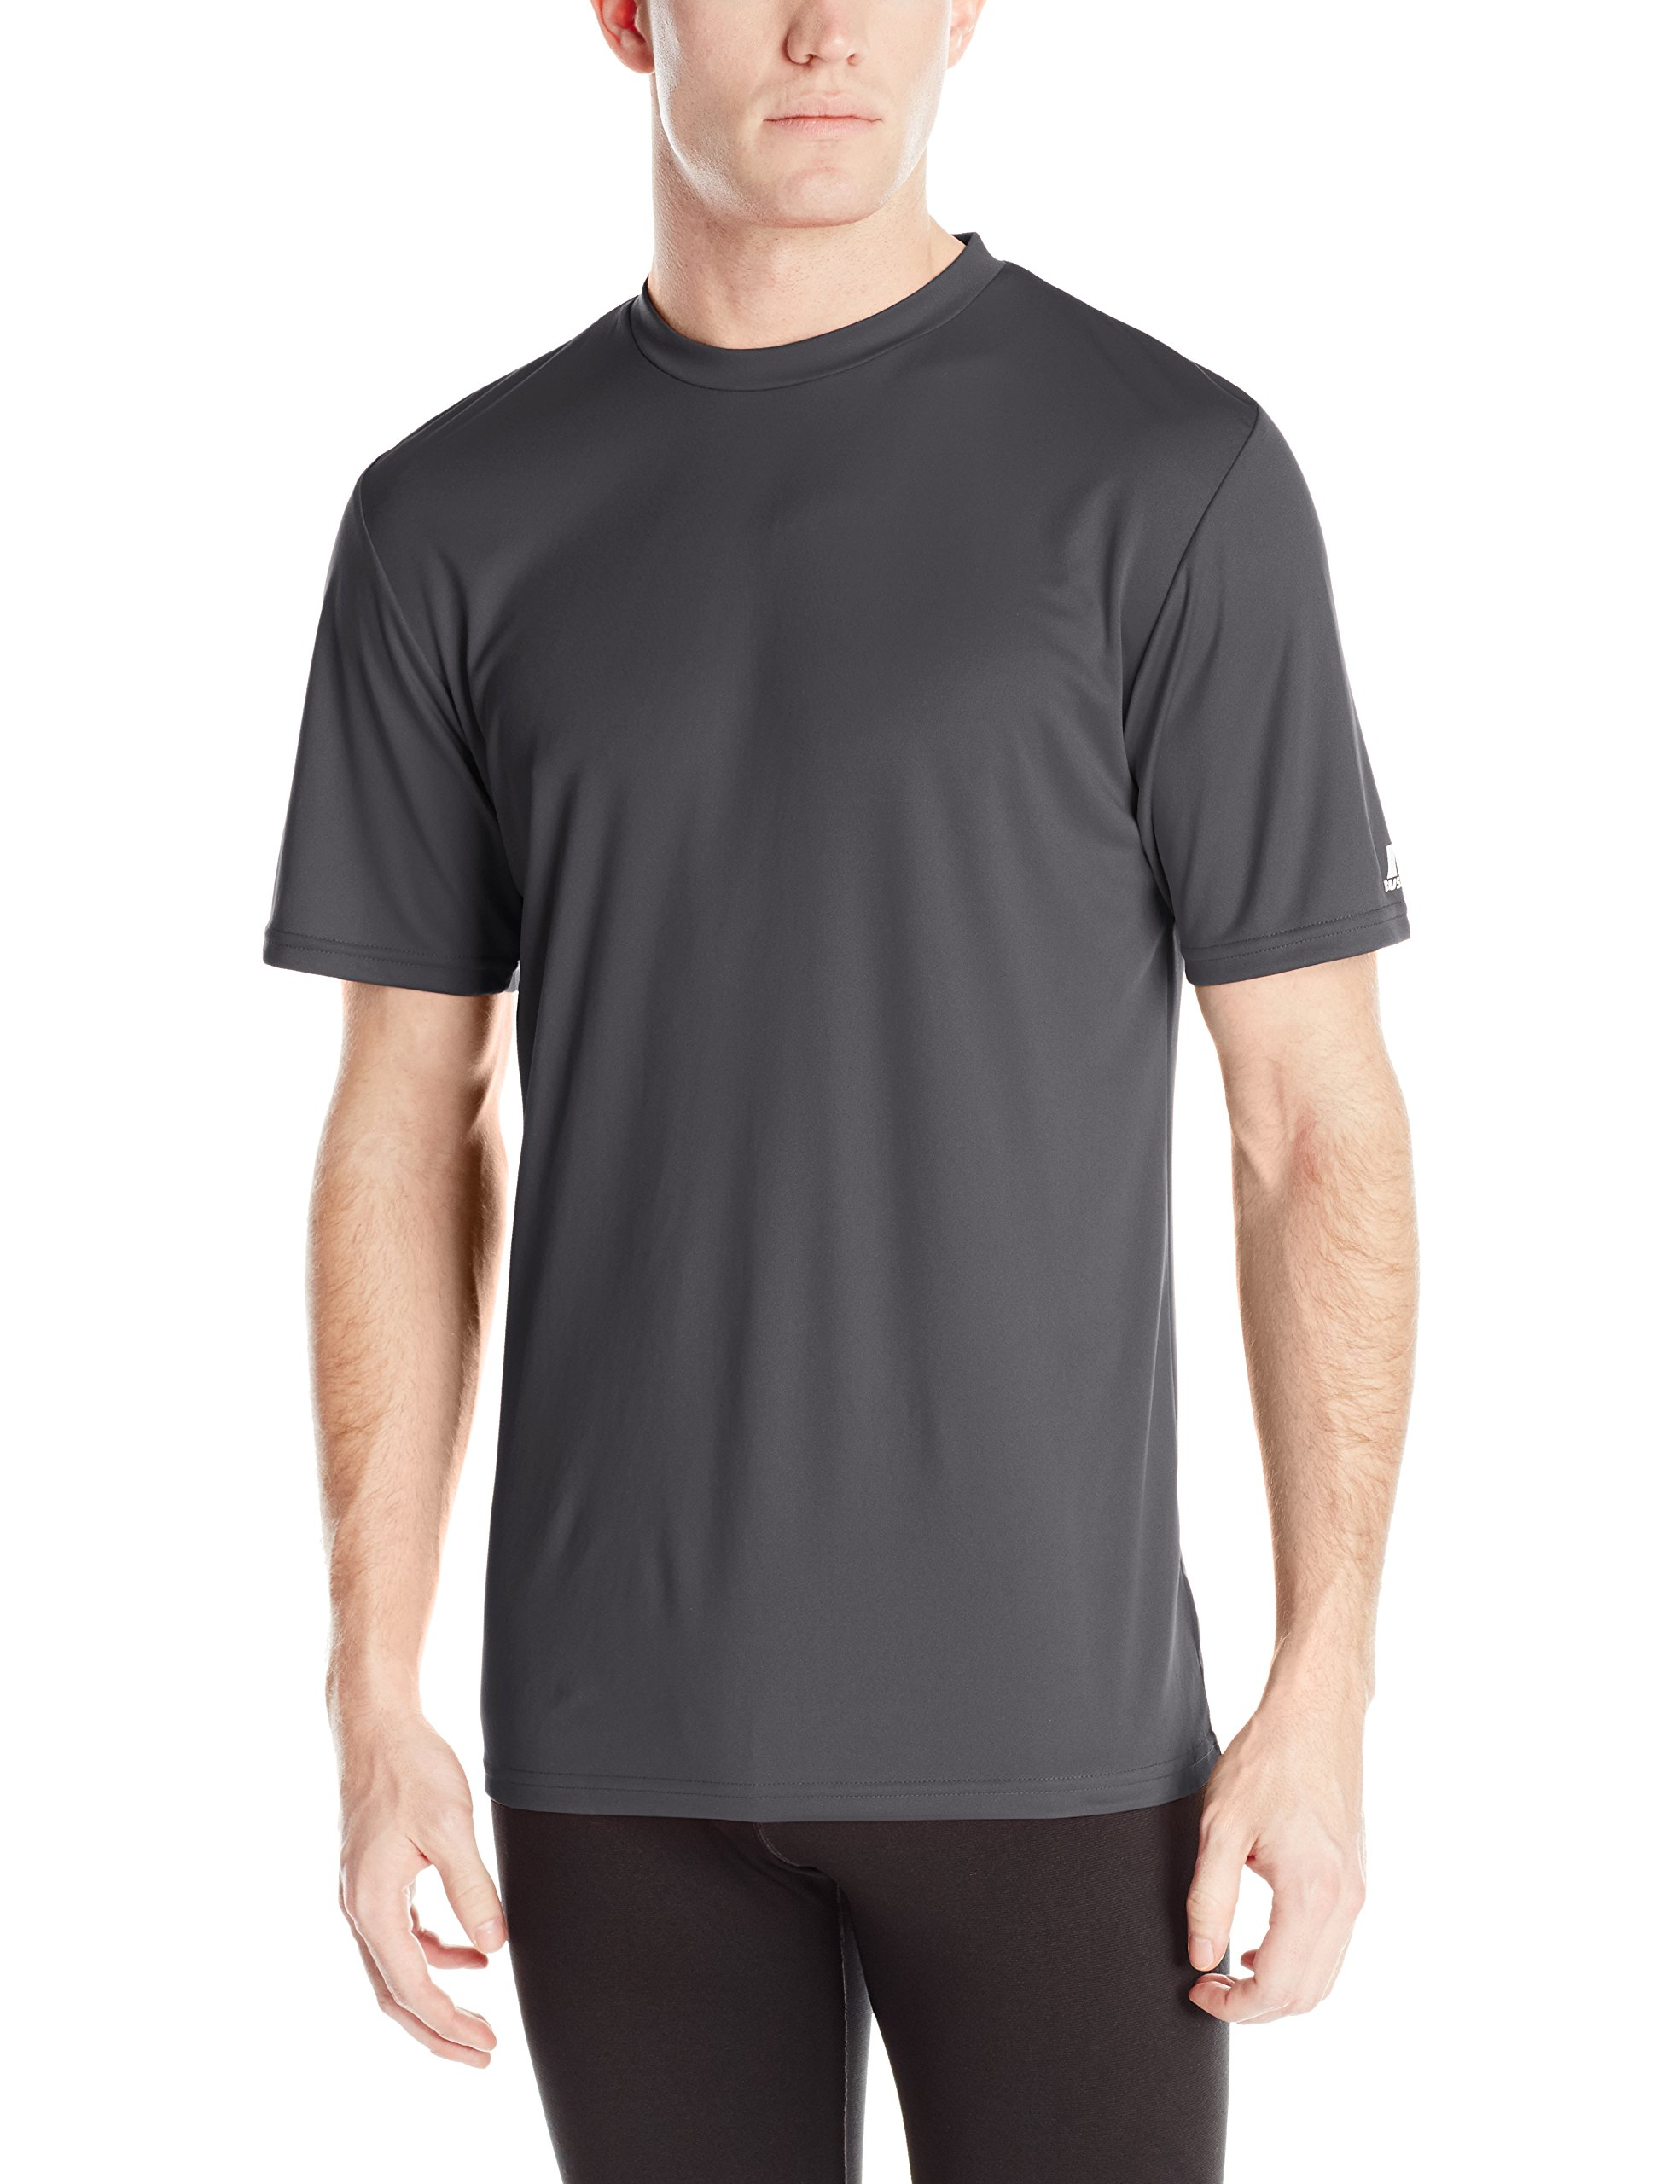 Russell Athletic Men's Performance T-Shirt, Stealth, XX-Large by Russell Athletic